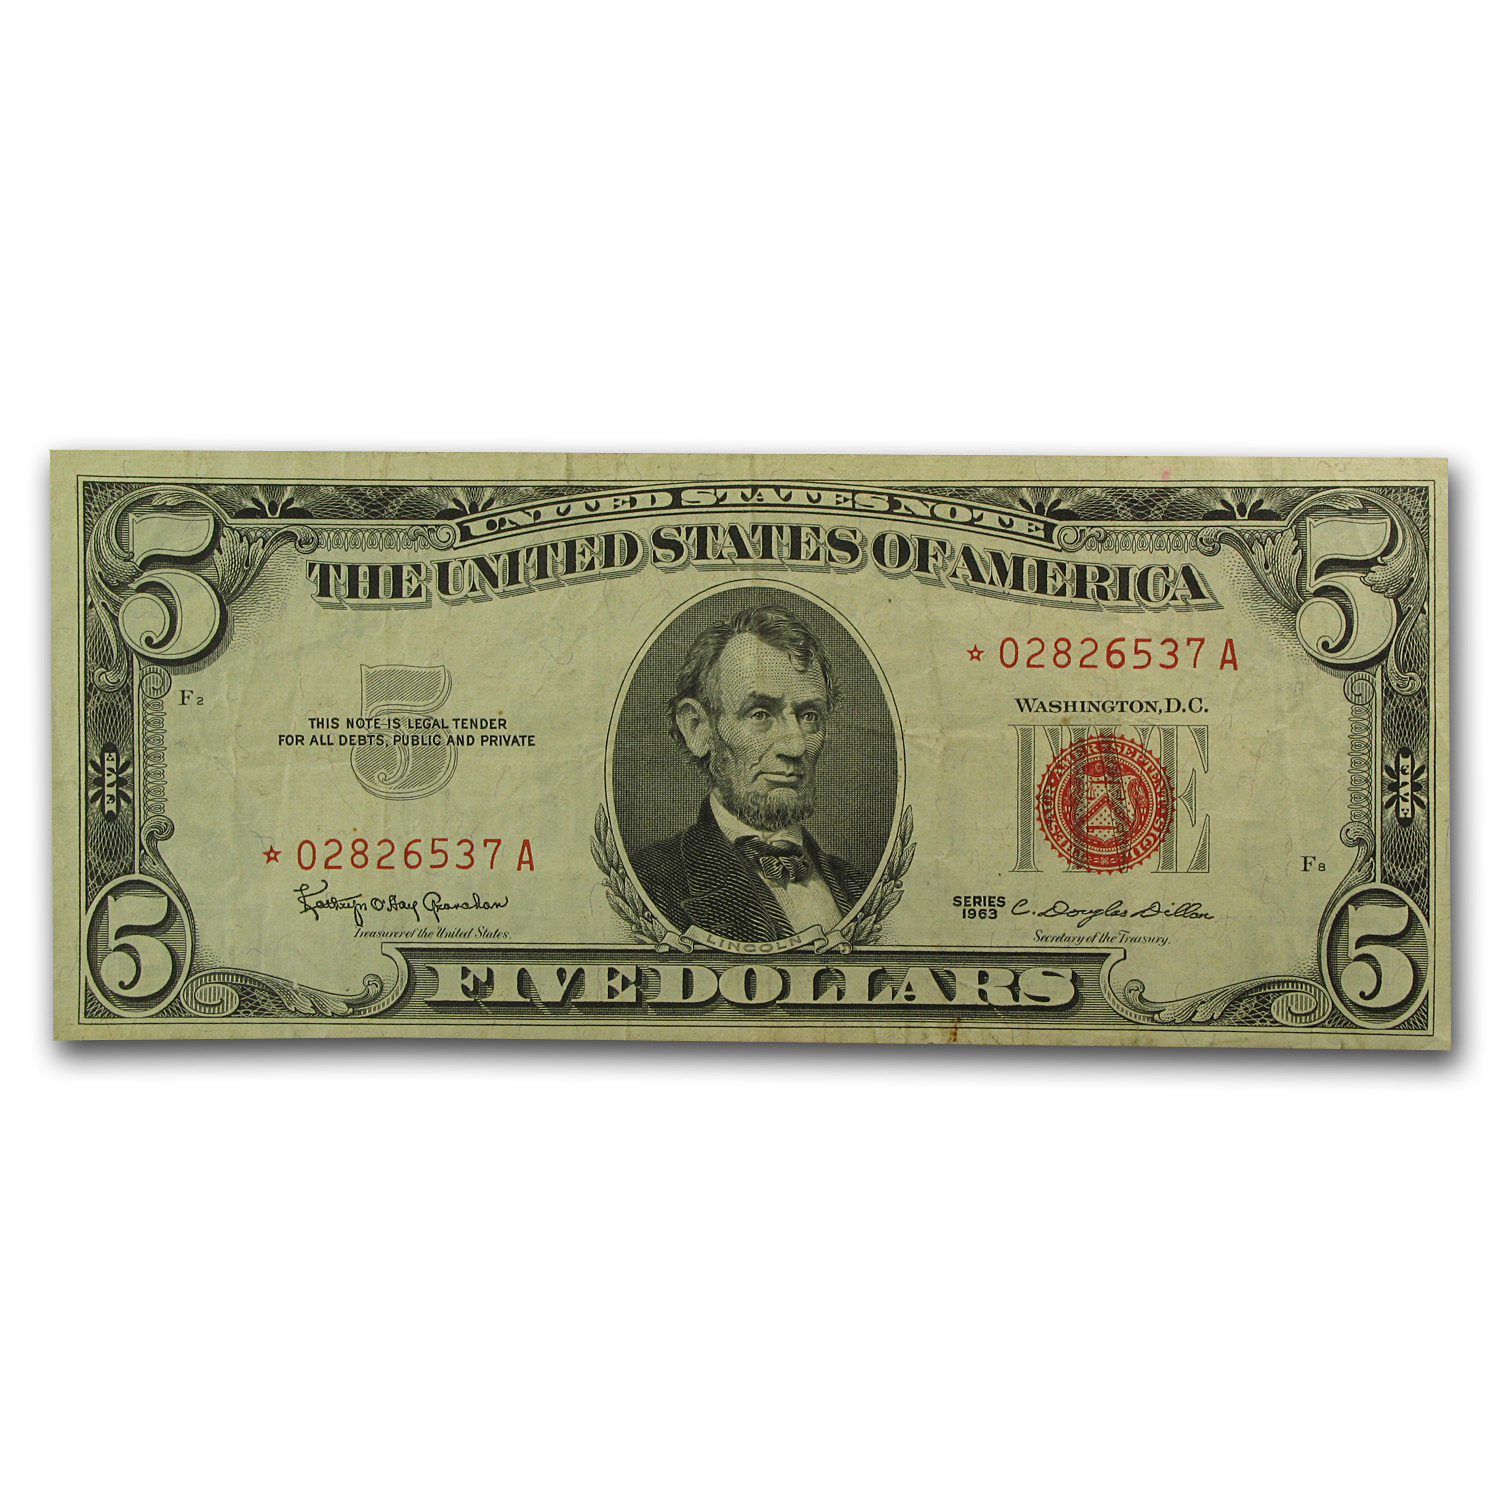 1963* $5.00 (Red Seal) (Very Fine) Star Note